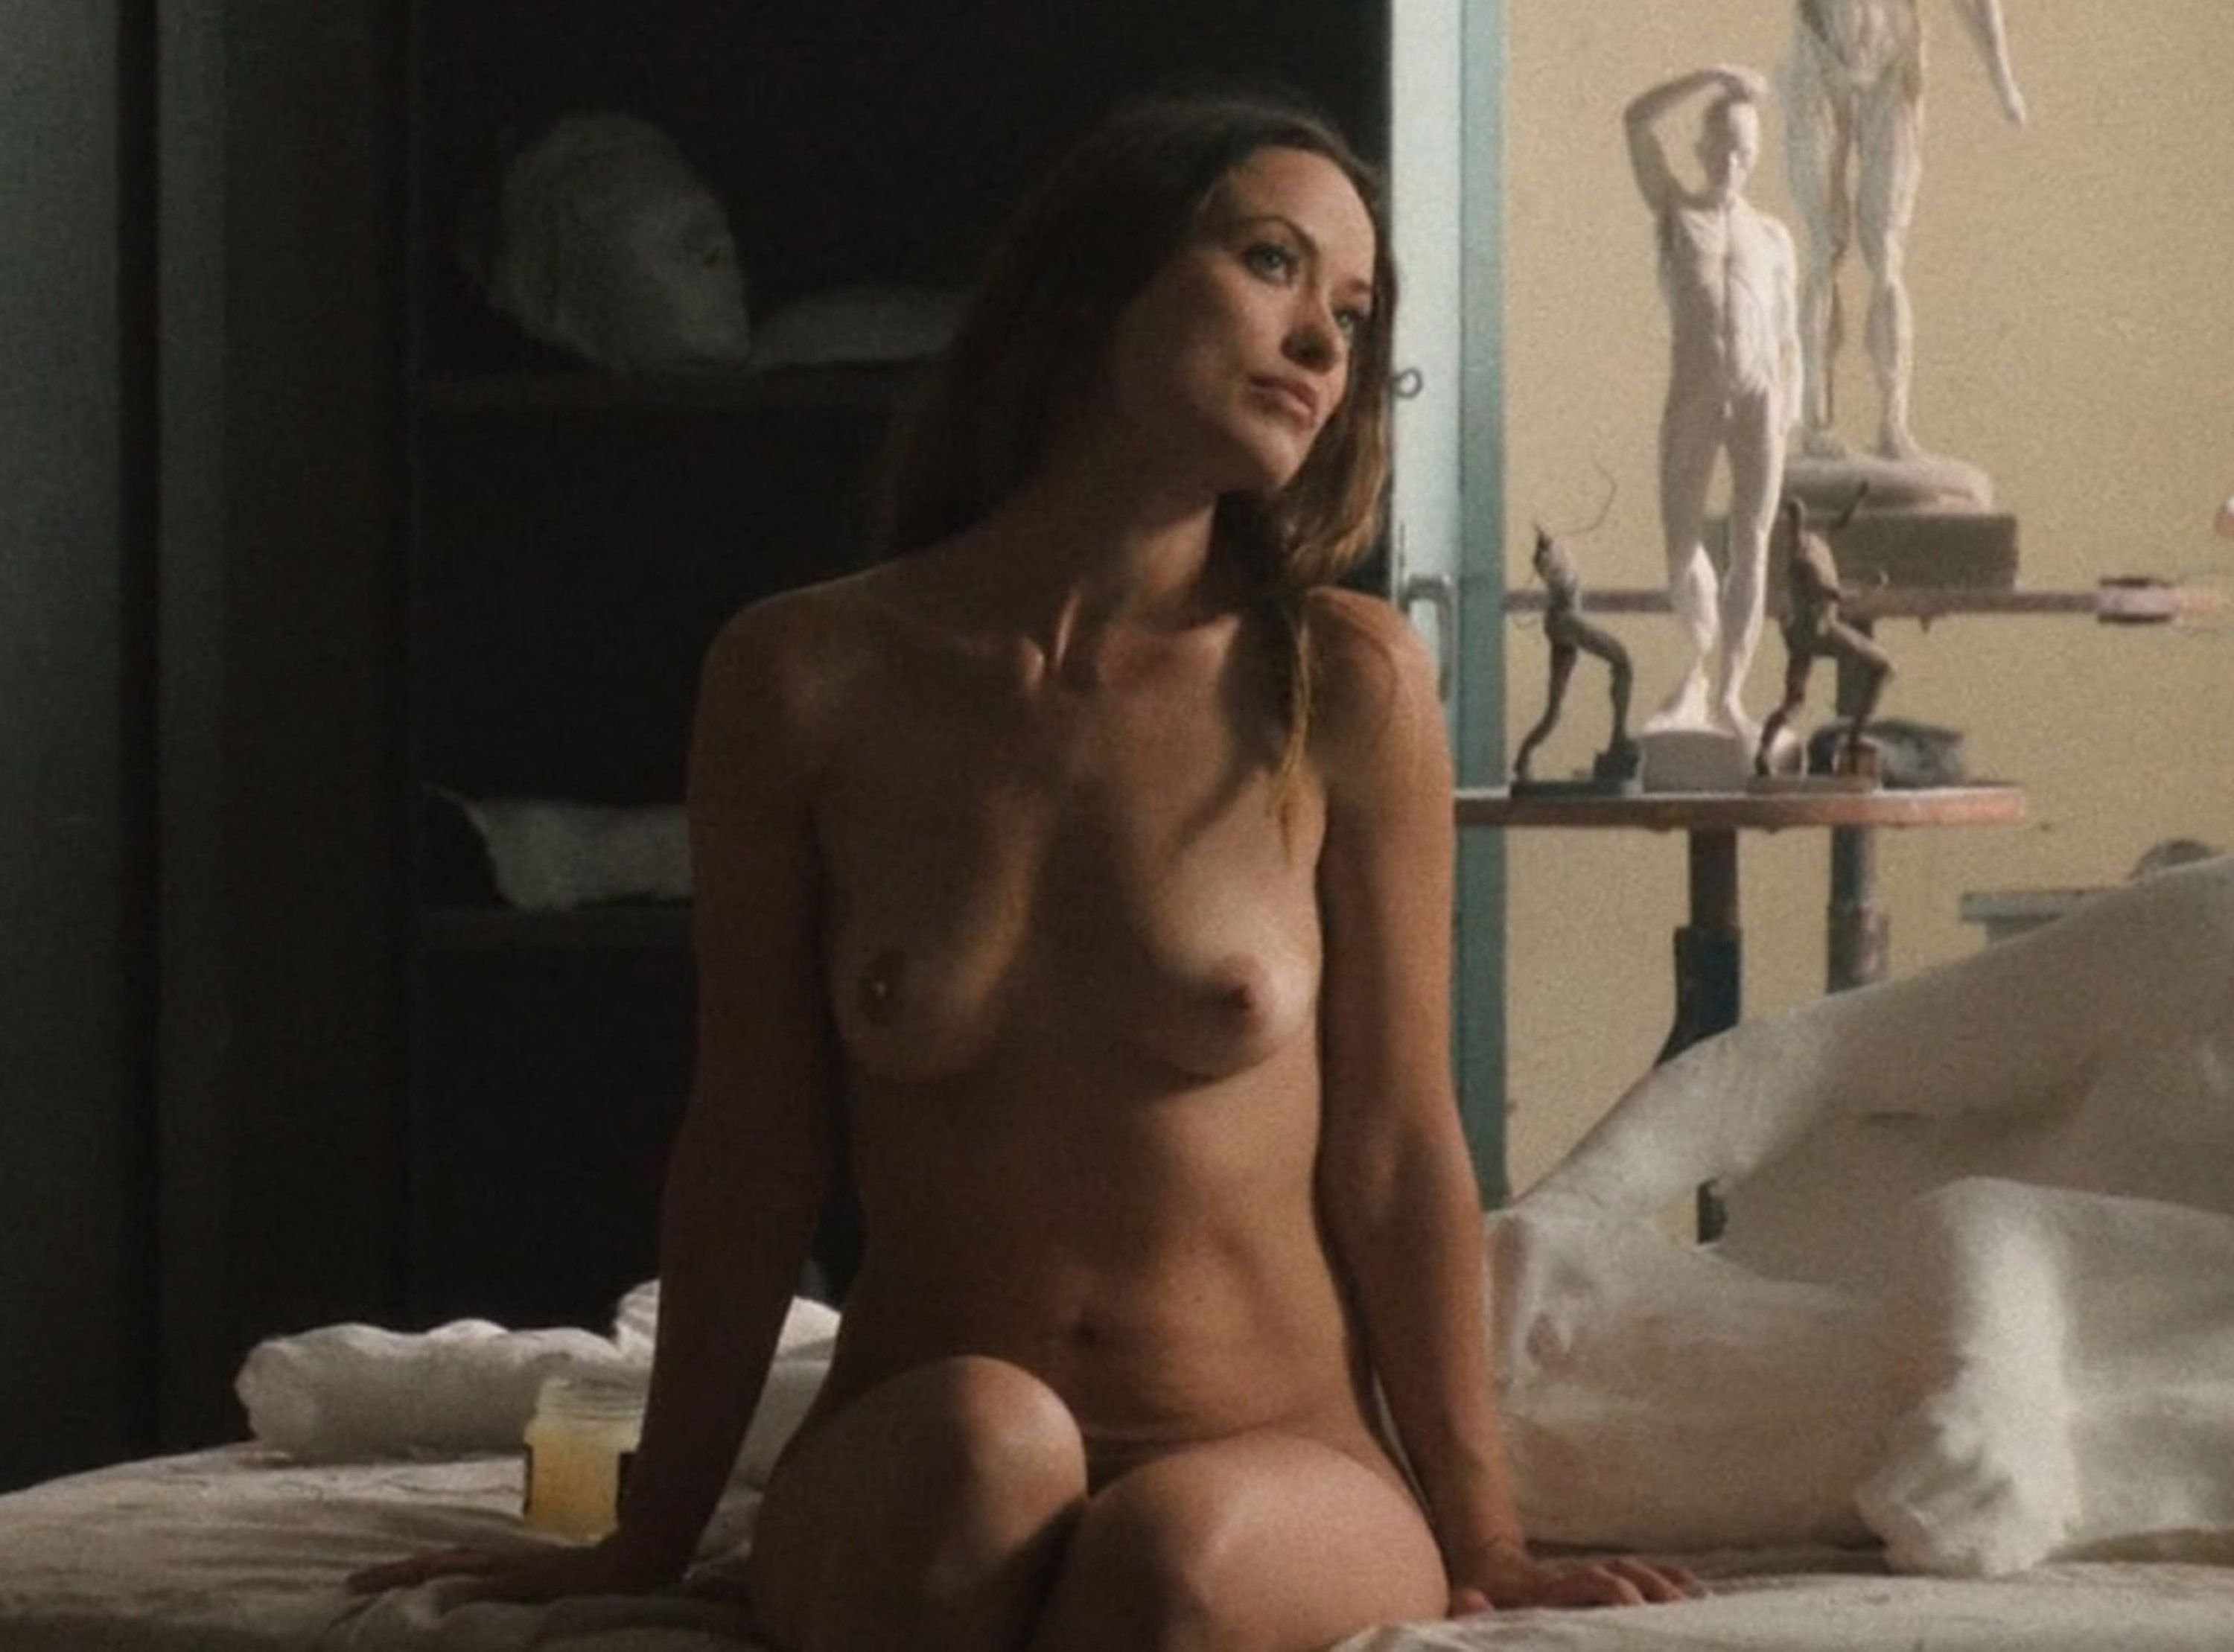 Olivia wilde topless video — photo 7